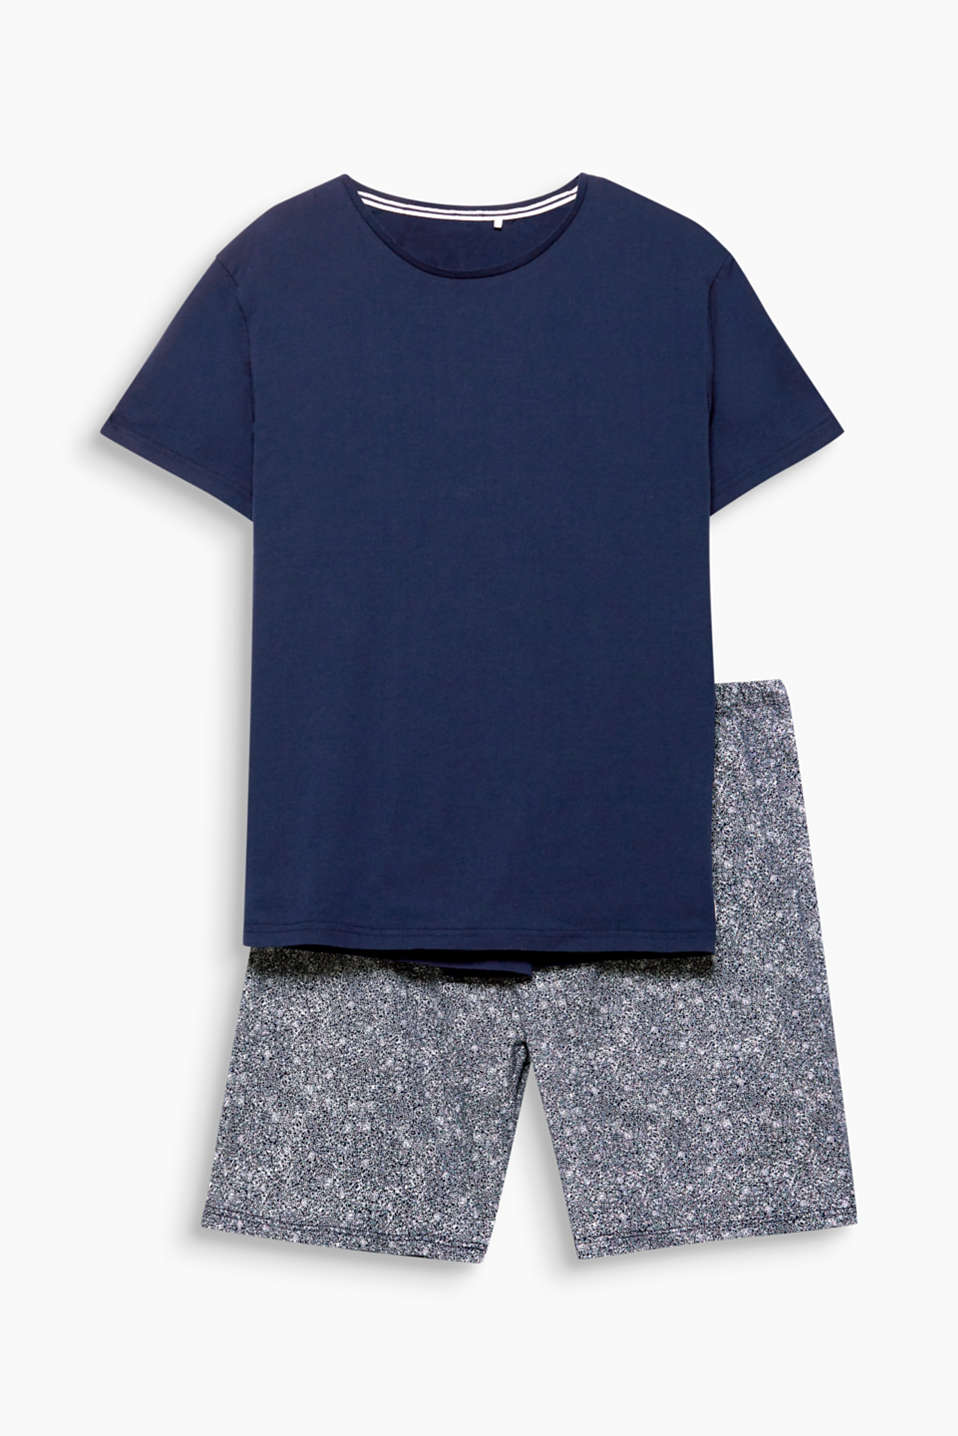 These jersey pyjamas with a plain basic T-shirt top and patterned Bermuda shorts are casual and comfortable to wear!